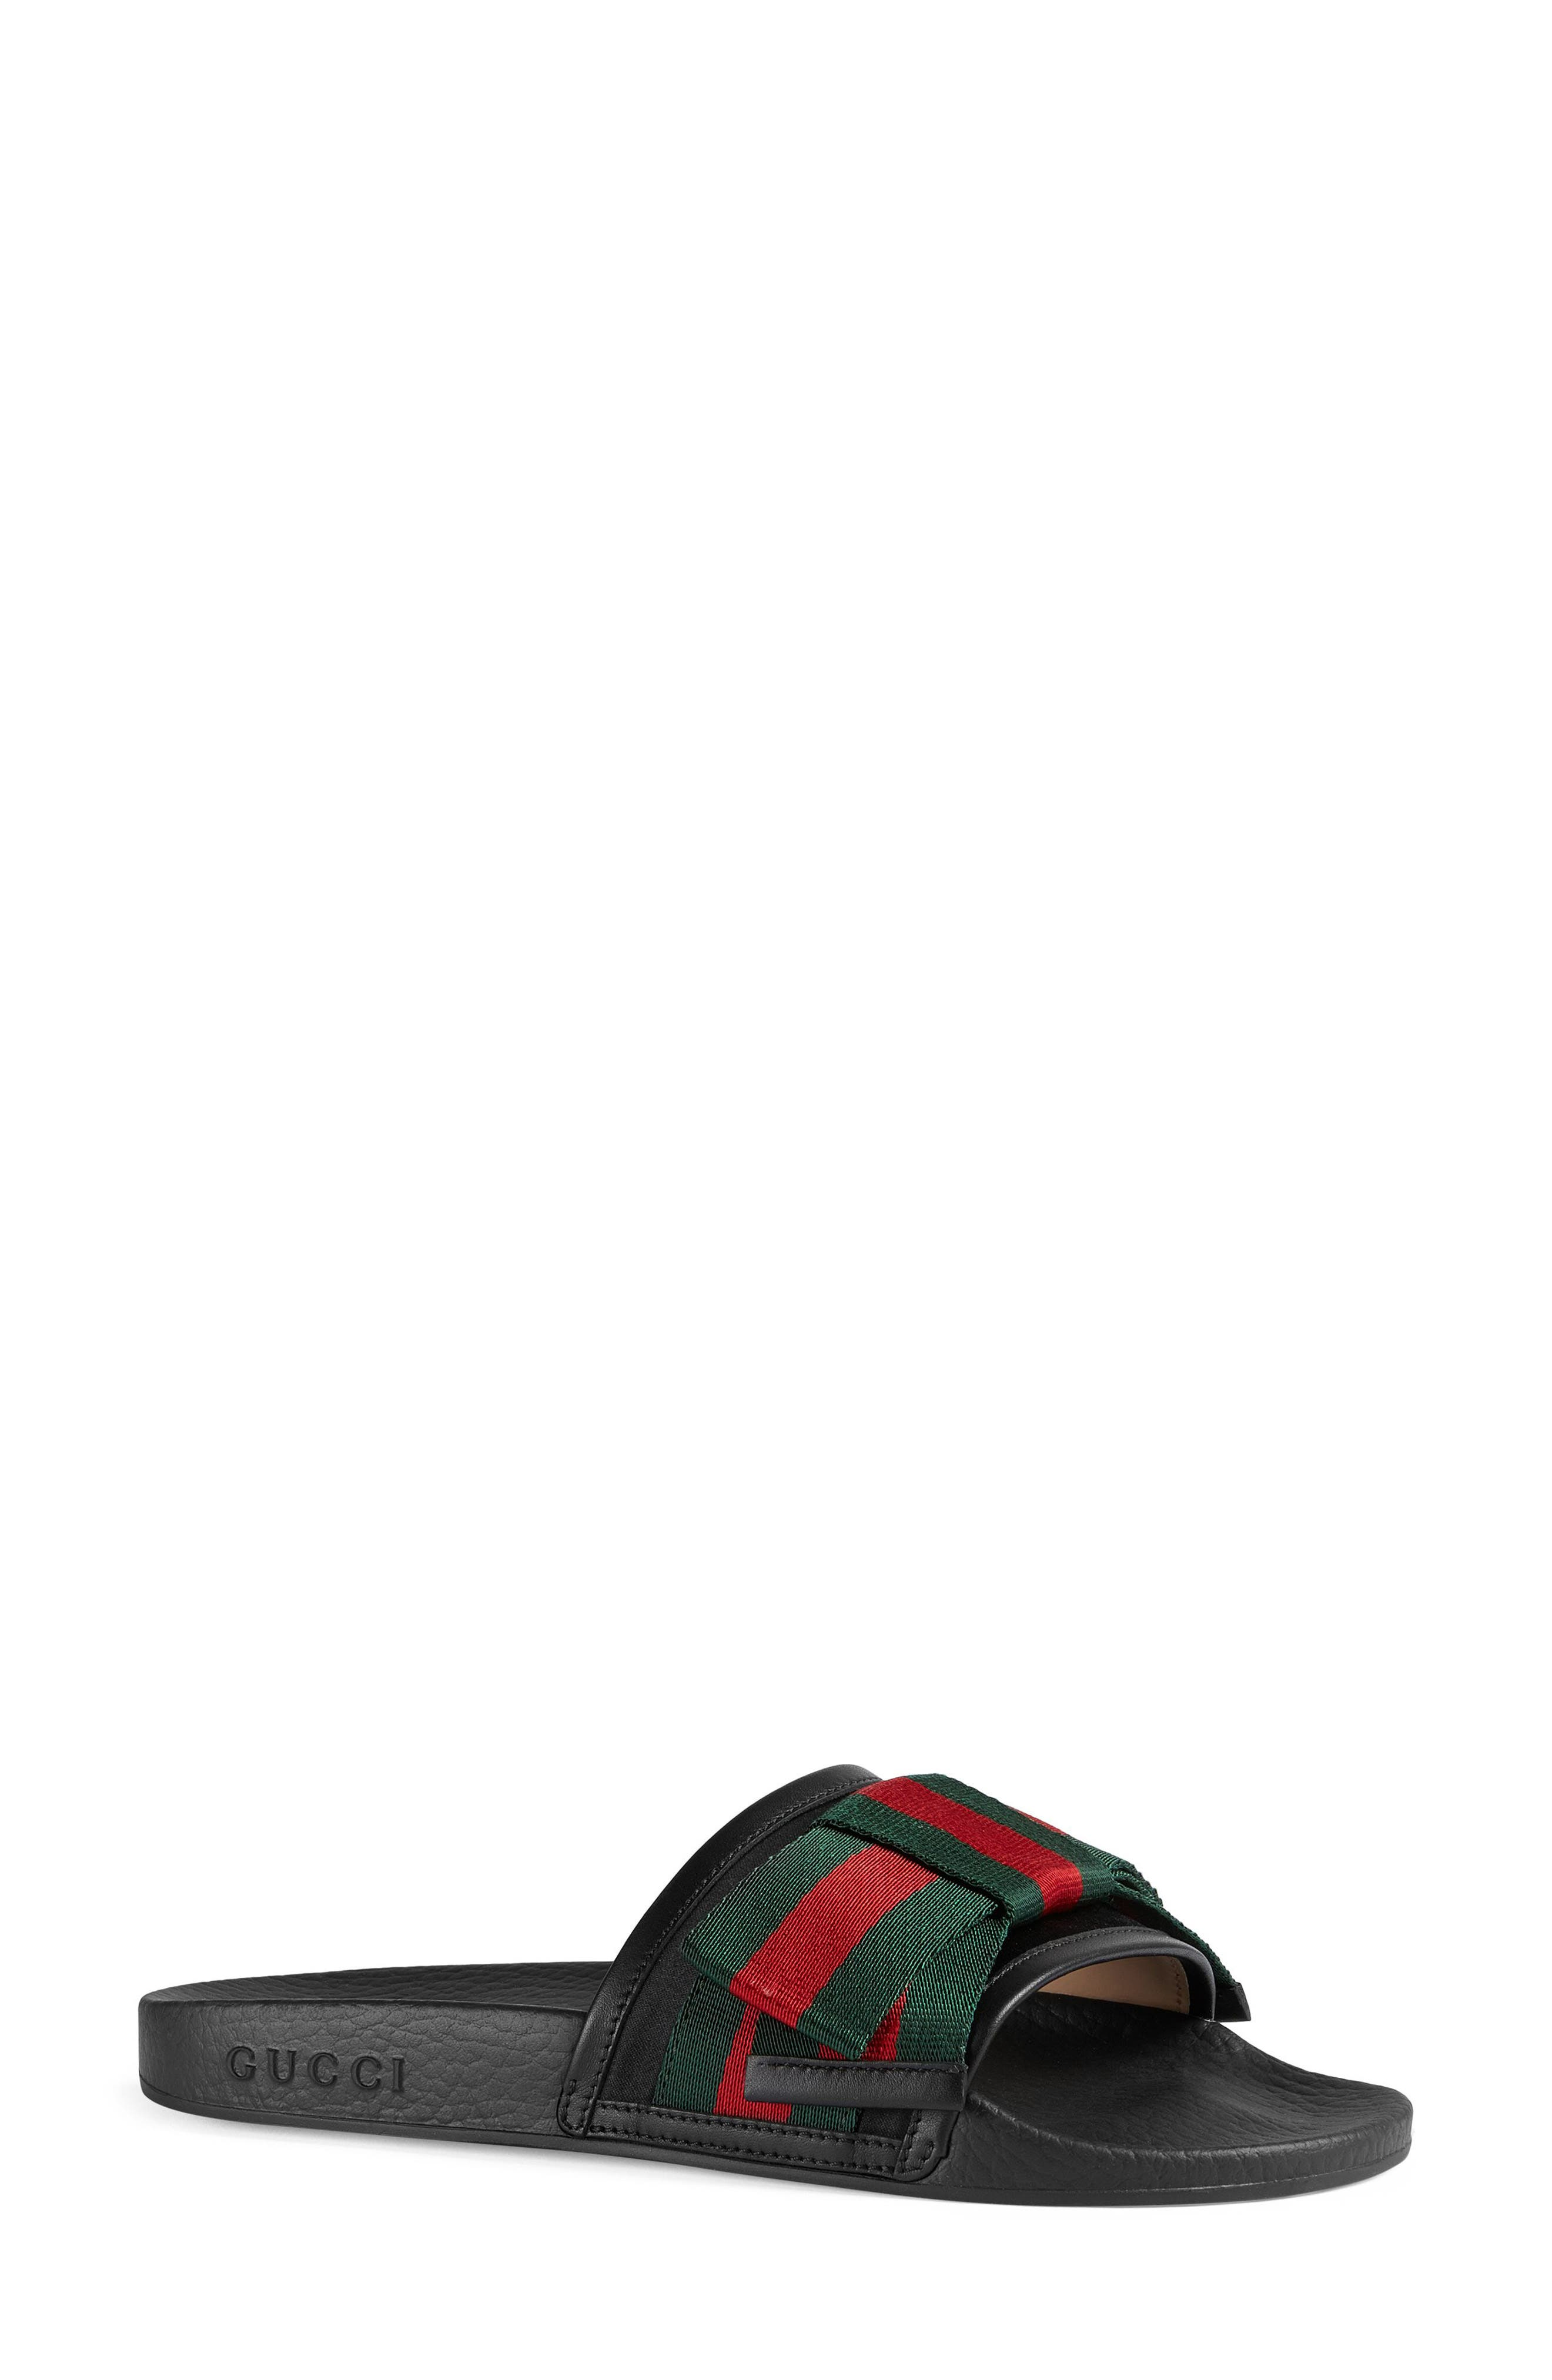 GUCCI Pursuit Bow Slide Sandal, Main, color, BLACK